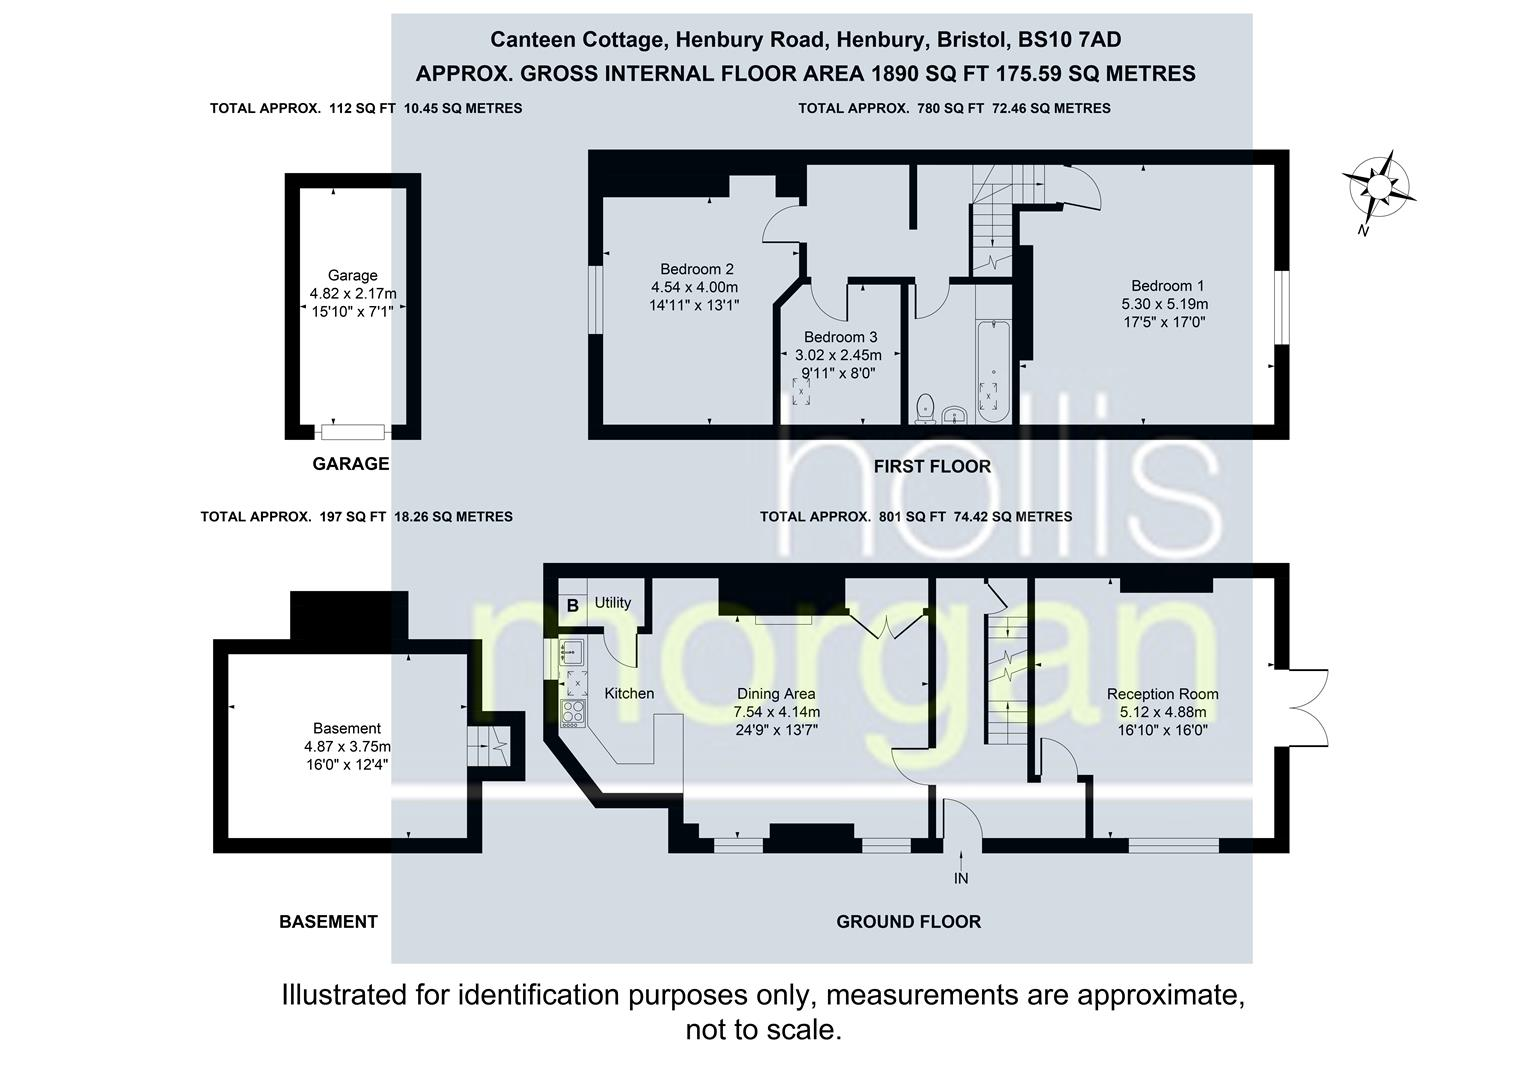 Floorplans For Canteen Cottage, Blaise